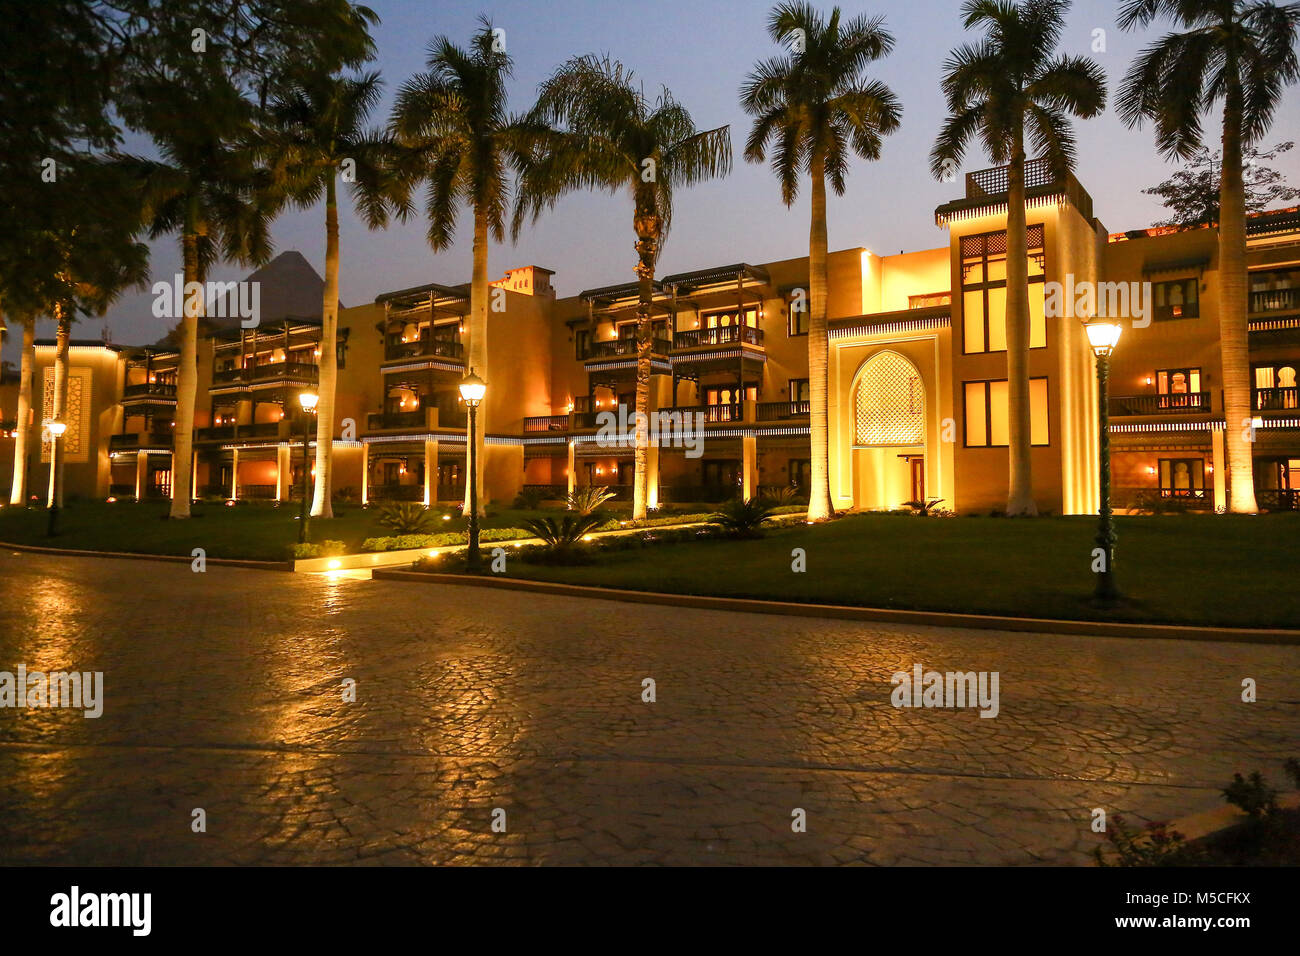 evening-or-night-time-view-of-the-mena-house-hotel-giza-cairo-egypt-M5CFKX.jpg